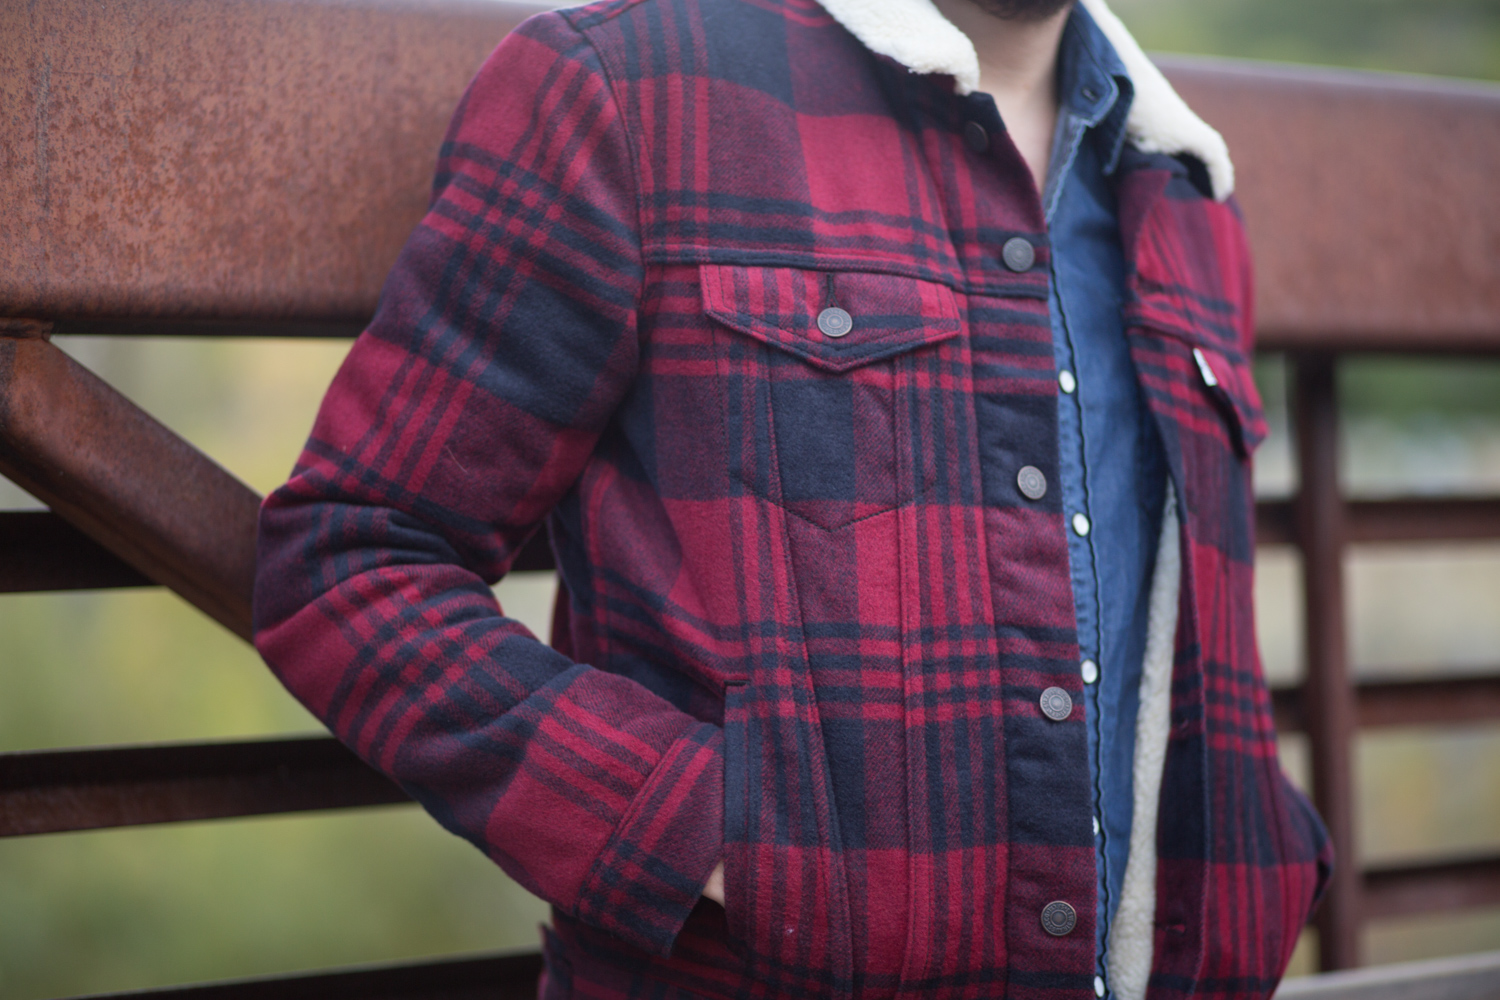 Levis THE SHERPA TRUCKER JACKET in red plaid review